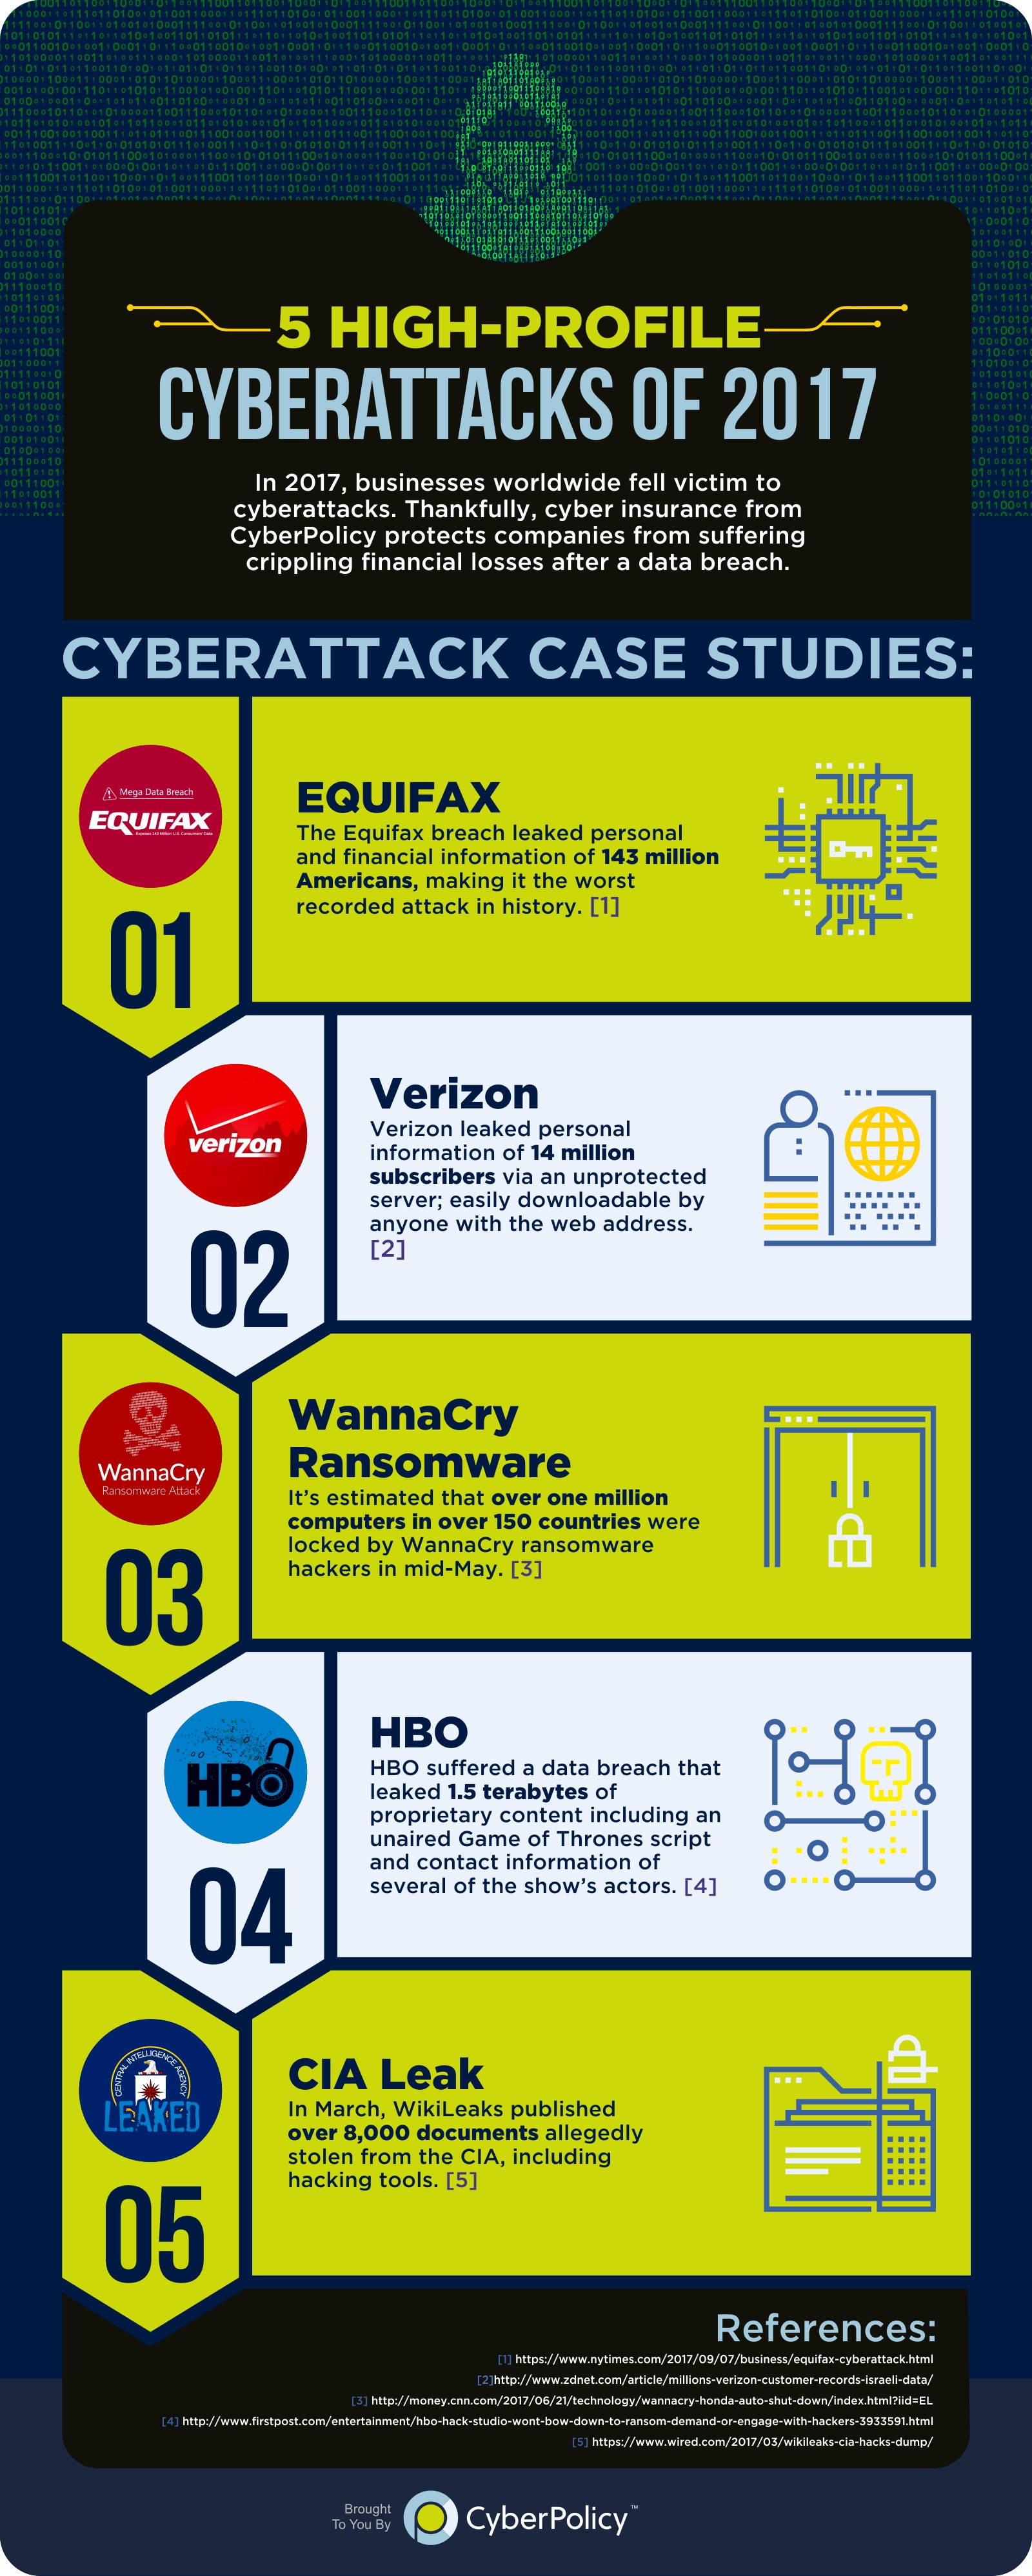 cyberpolicy_-_5_high-profile_cyberattacks_of_2017_-_infographic_b